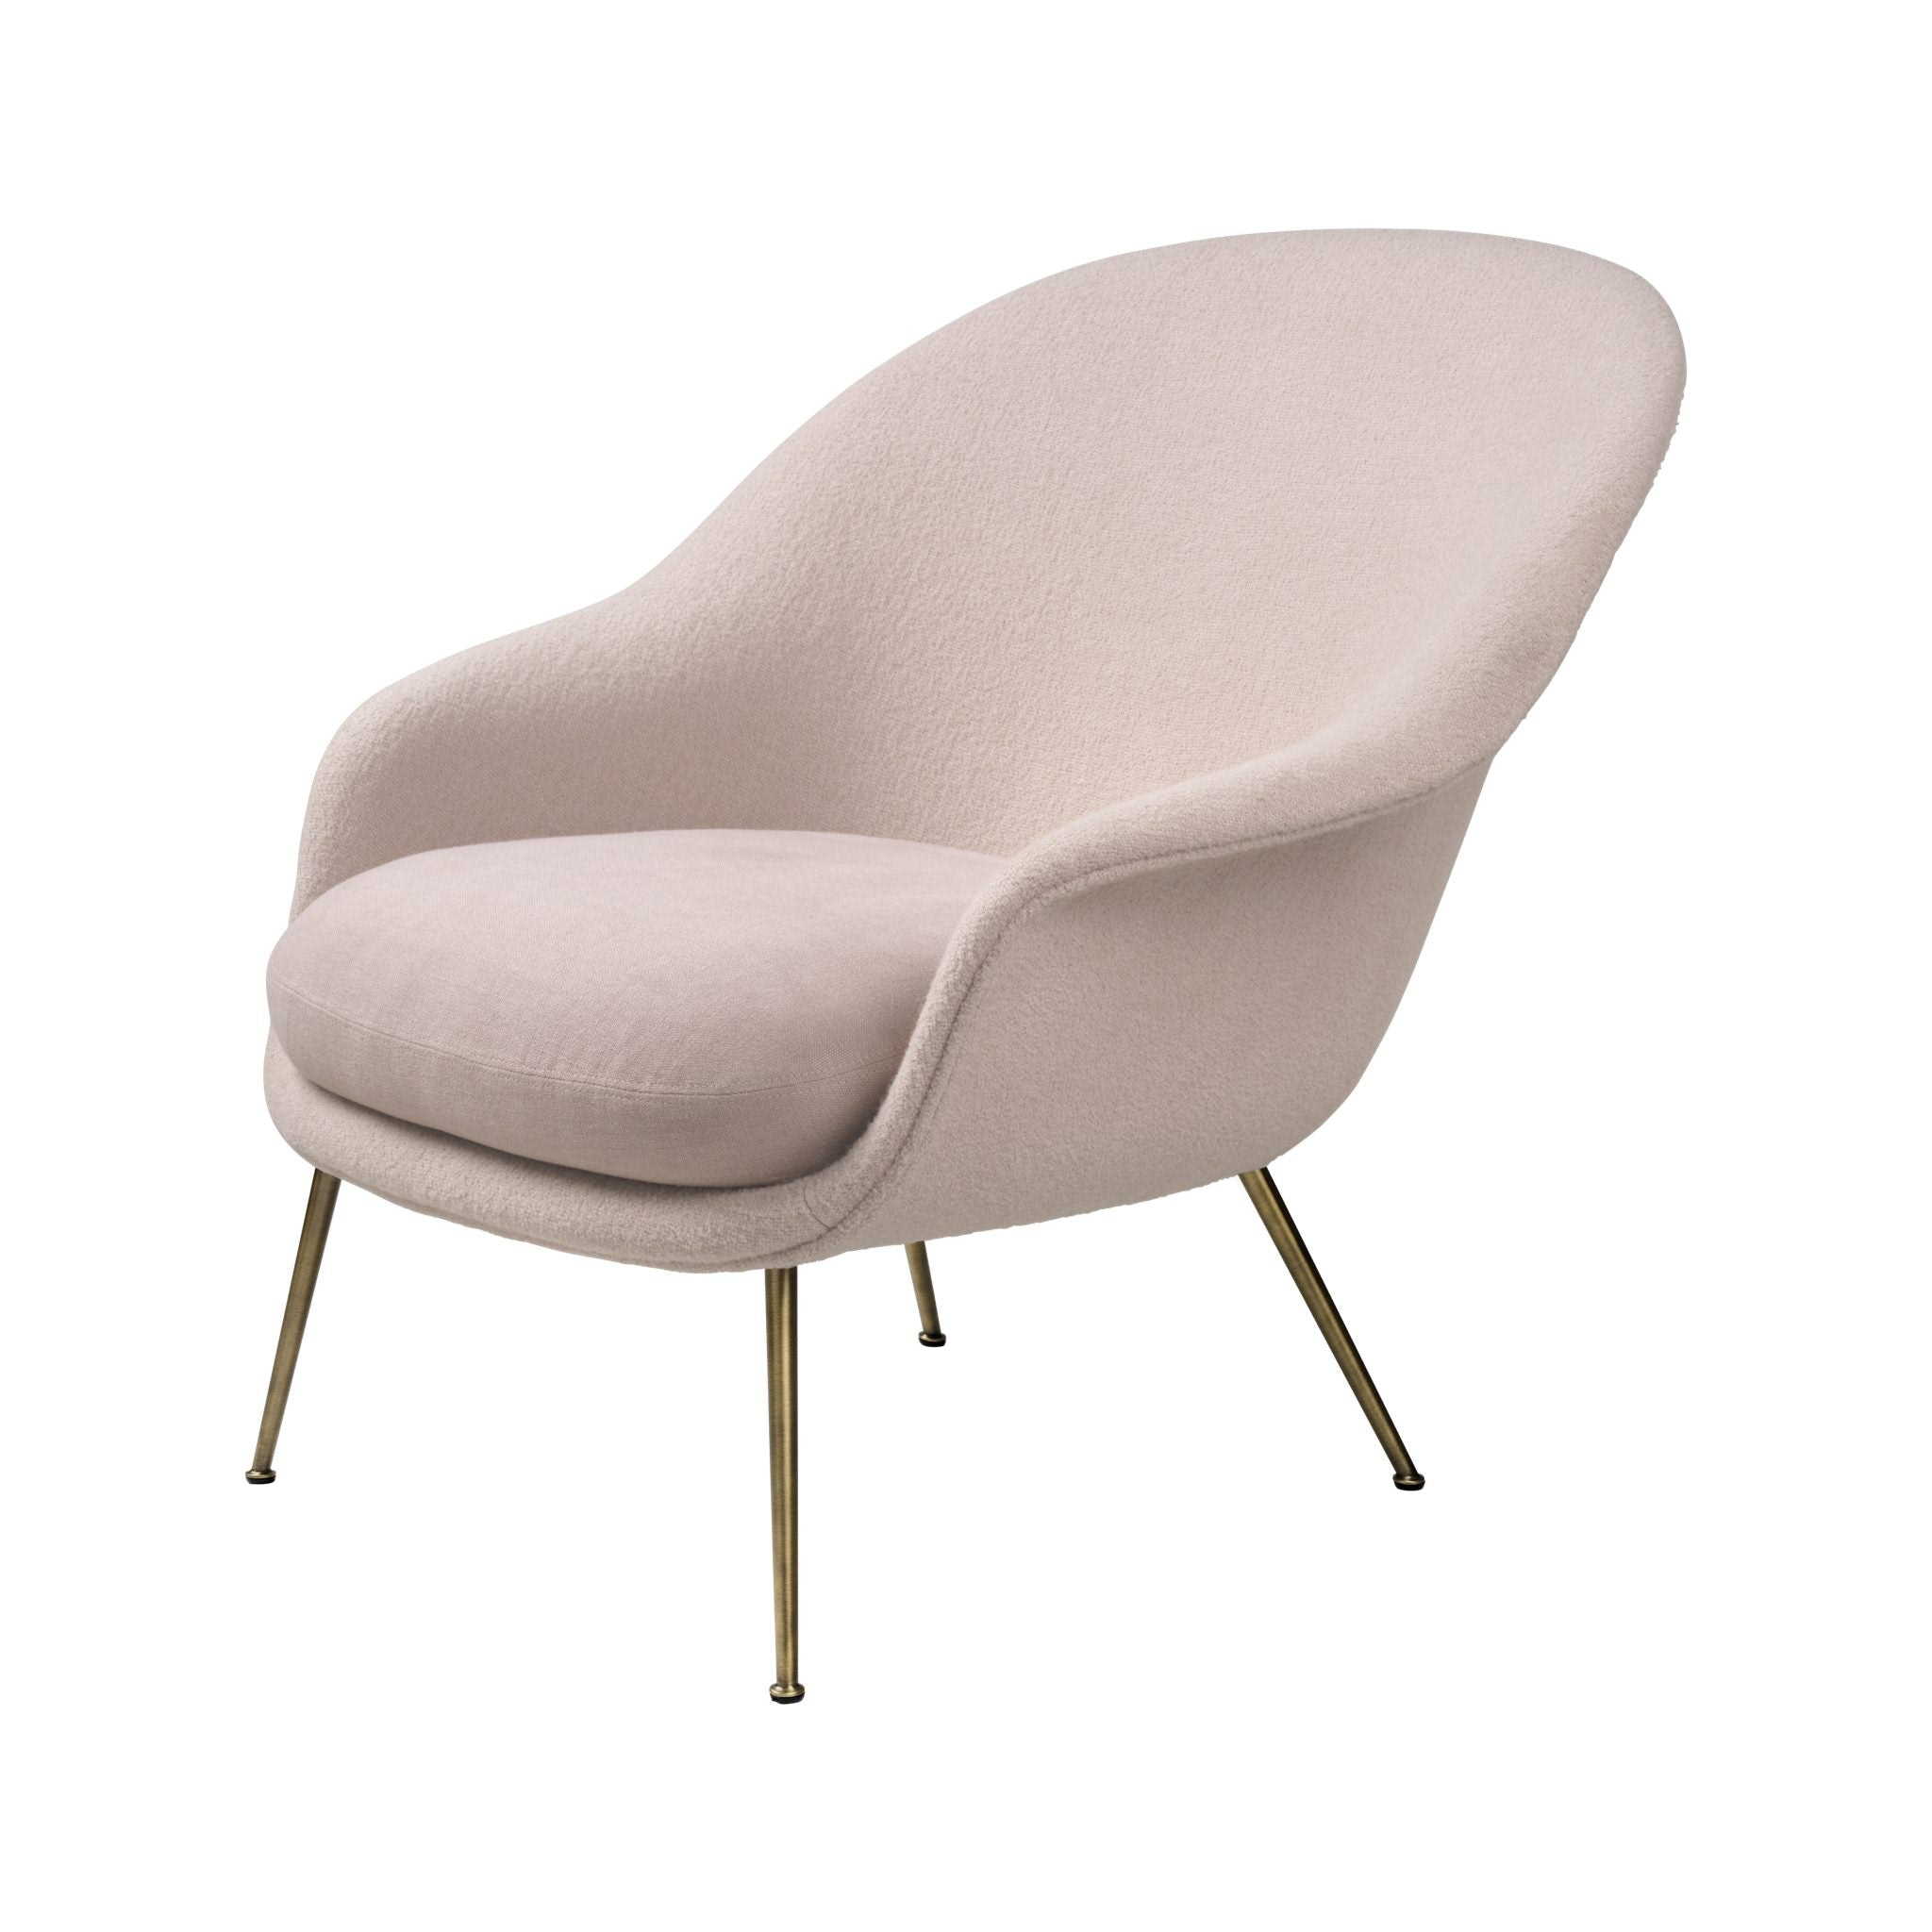 Bat Lounge Chair Low Back Conic Base by Gubi